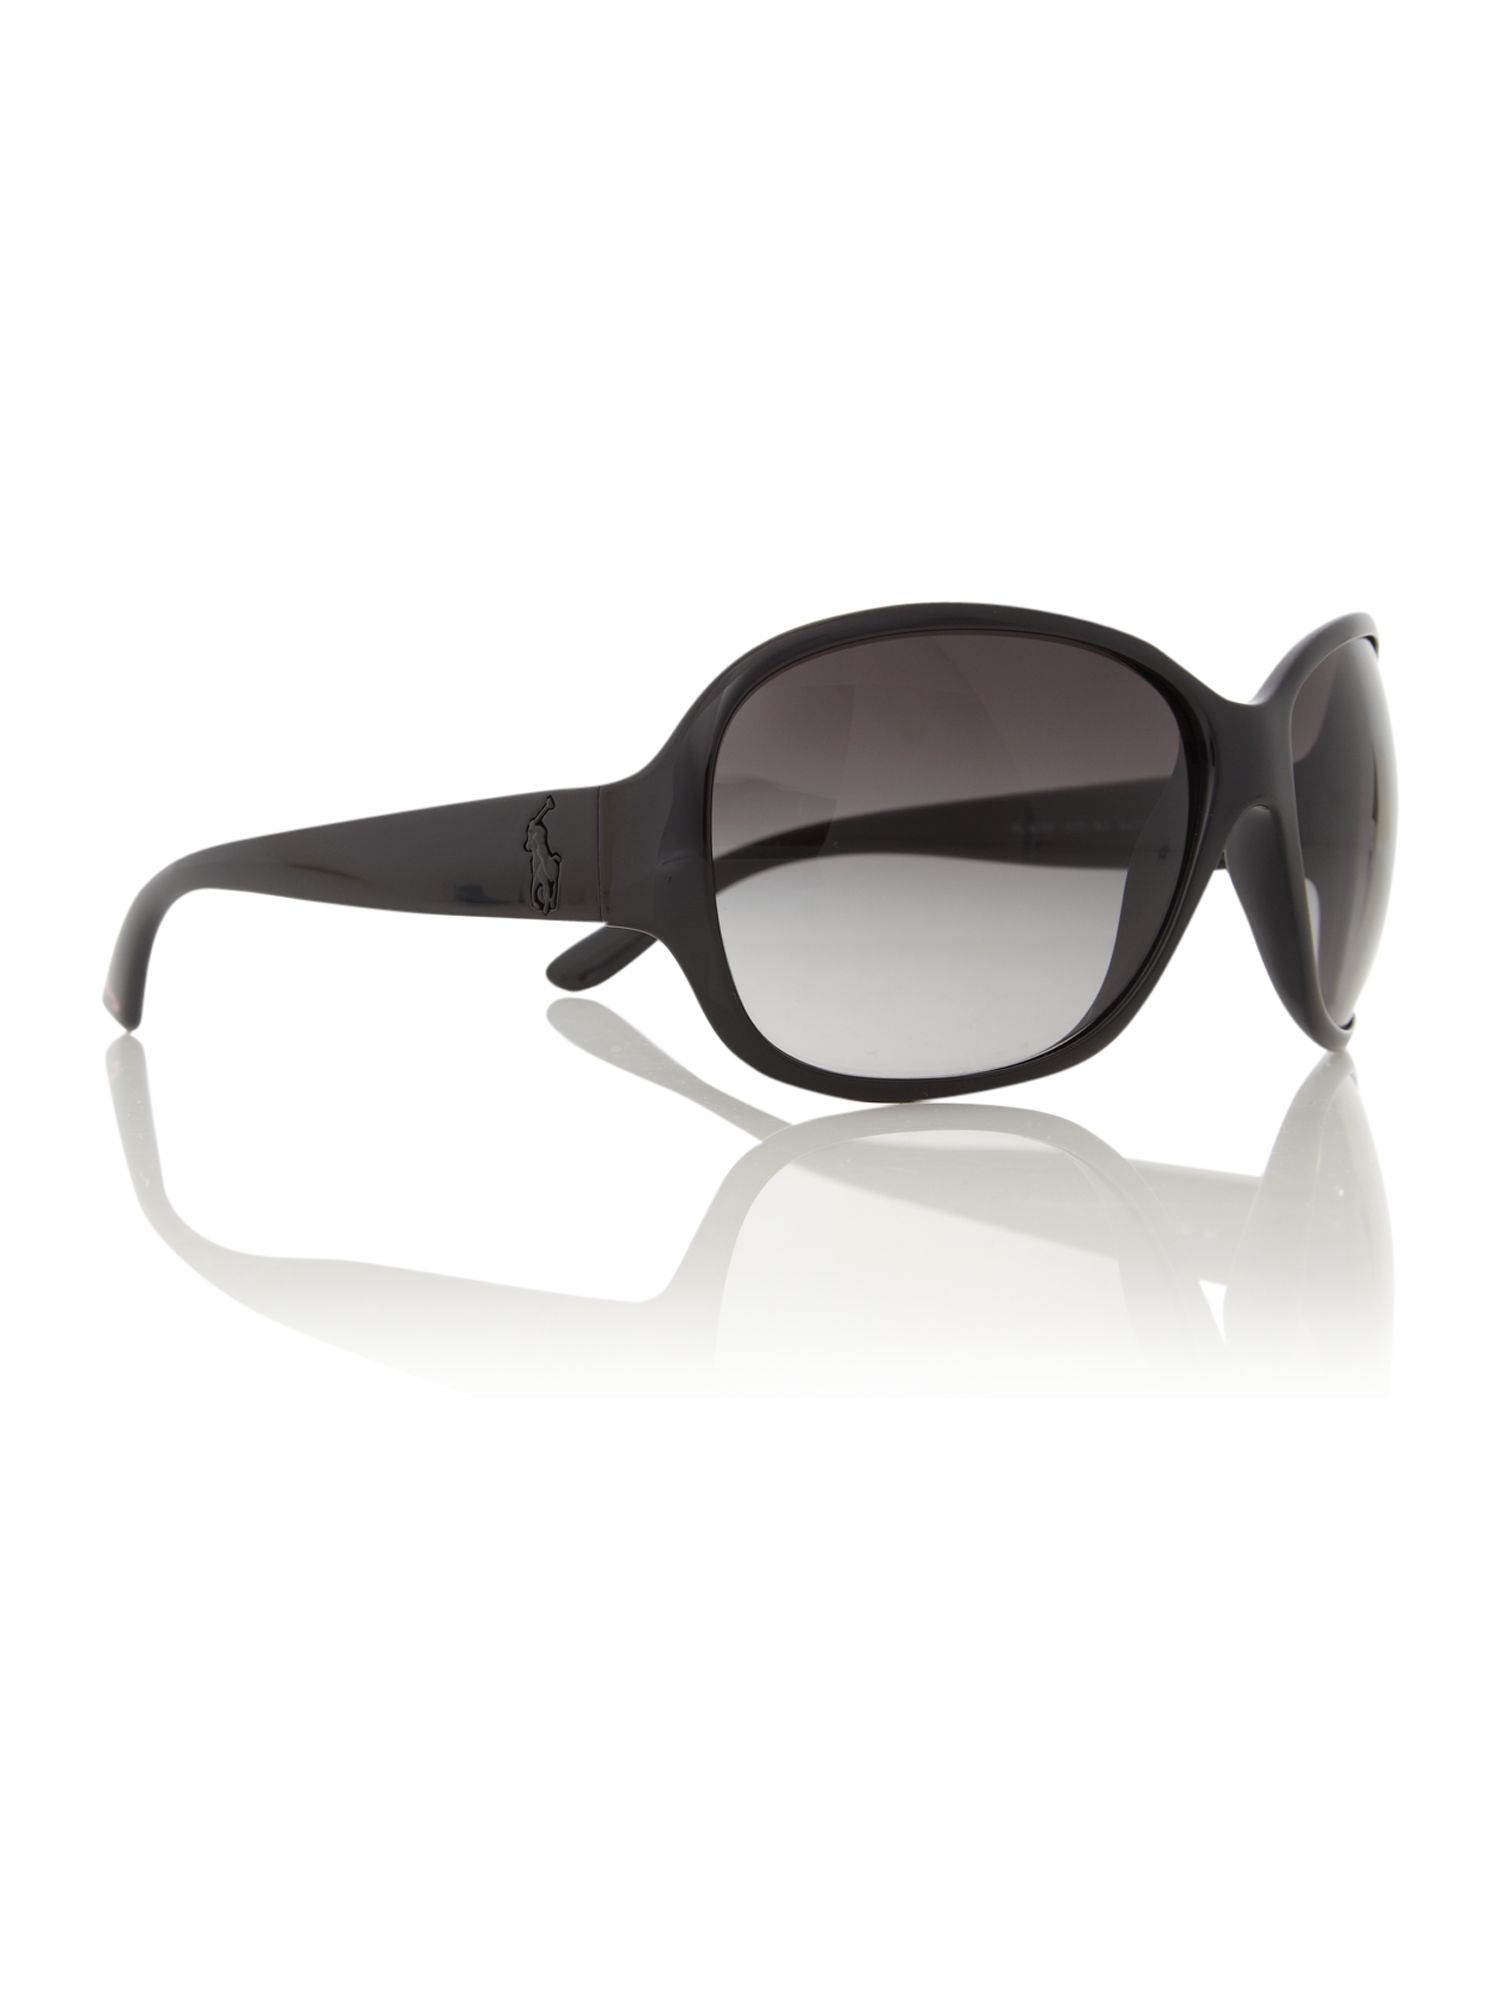 Ladies RL8090 Big Pony Black Sunglasses